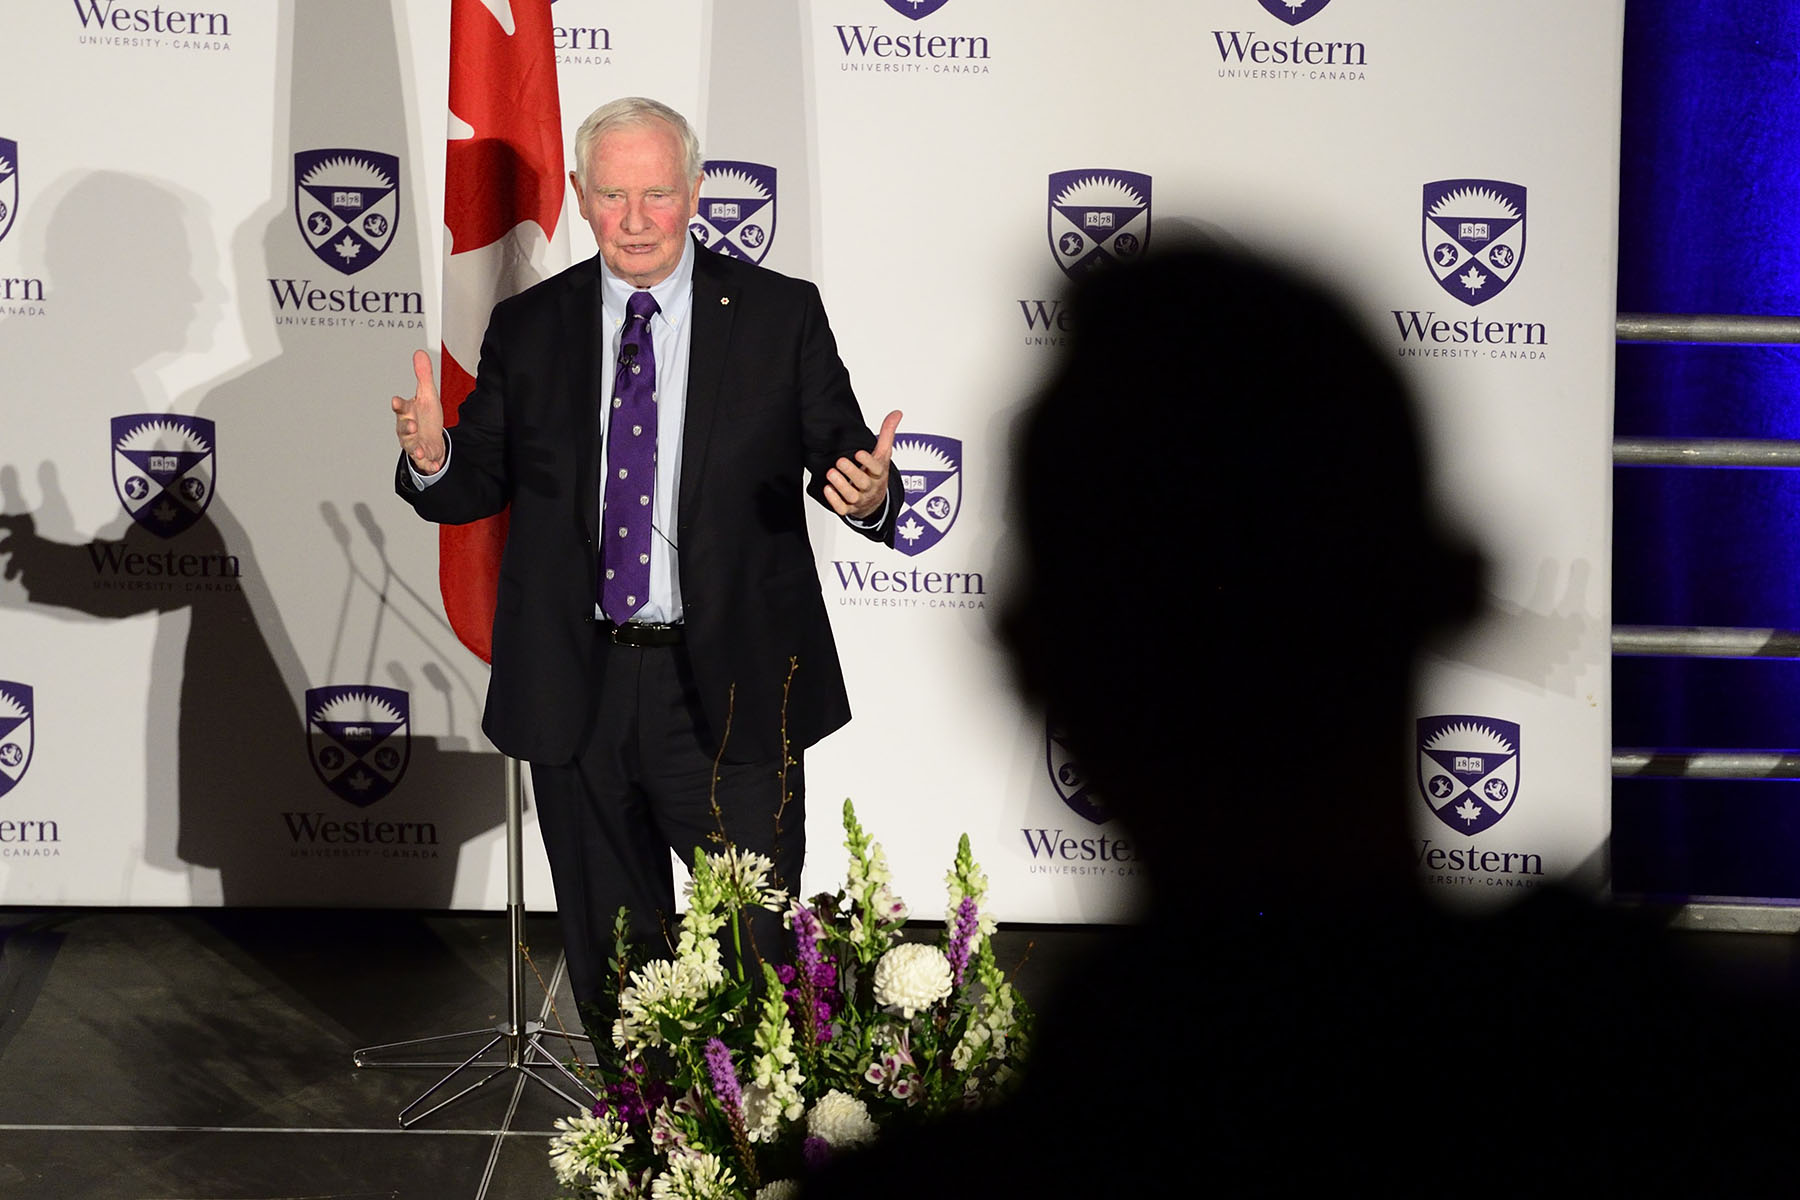 Established and hosted by Western University's president and vice-chancellor, Mr. Amit Chakma, the President's Lecture Series showcases personalities of national and international prominence from the realms of academia, politics, civil service, business and the arts as a means to engage the campus and broader community in meaningful public discourse on a wide range of important topics.